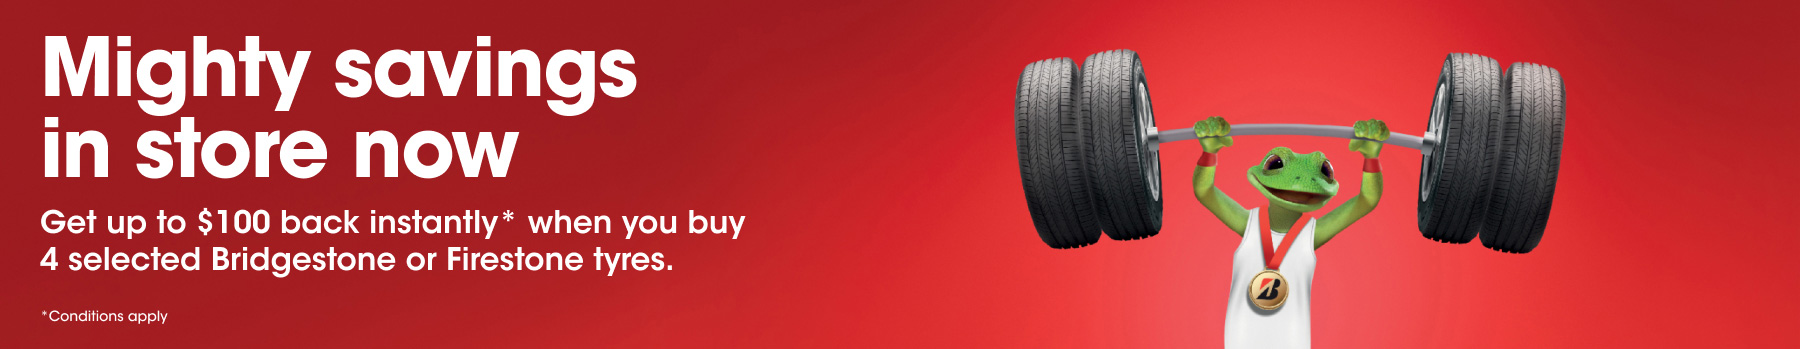 July Promotion - Get the $100 back instantly* when you buy 4 selected Bridgestone or Firestone tyres